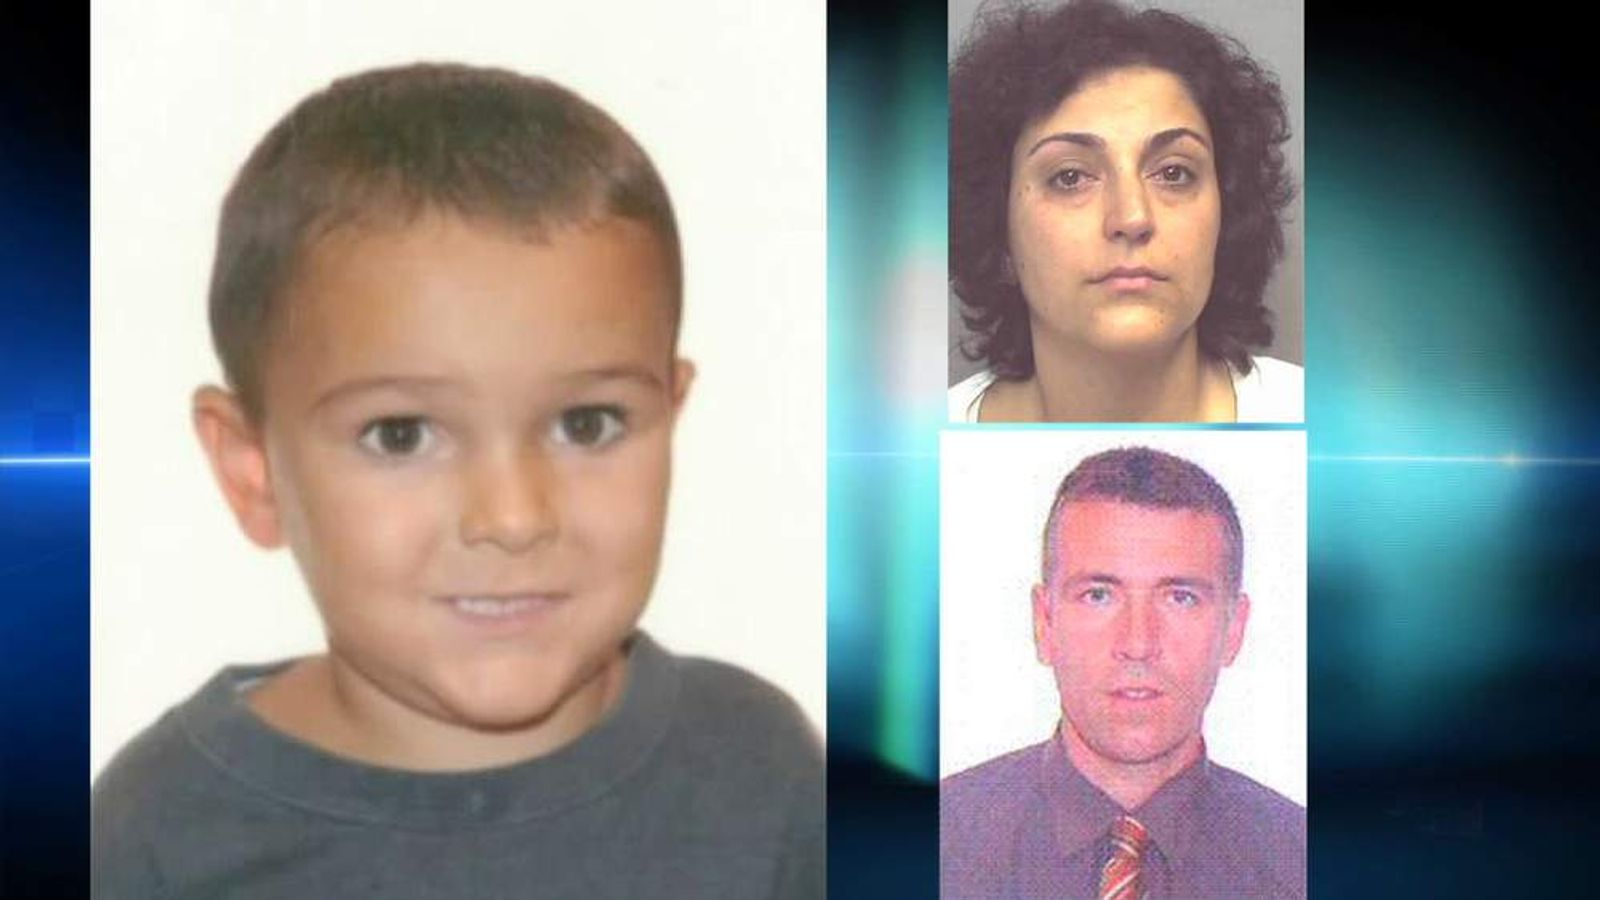 Ashya King and his parents Brett and Naghemeh King